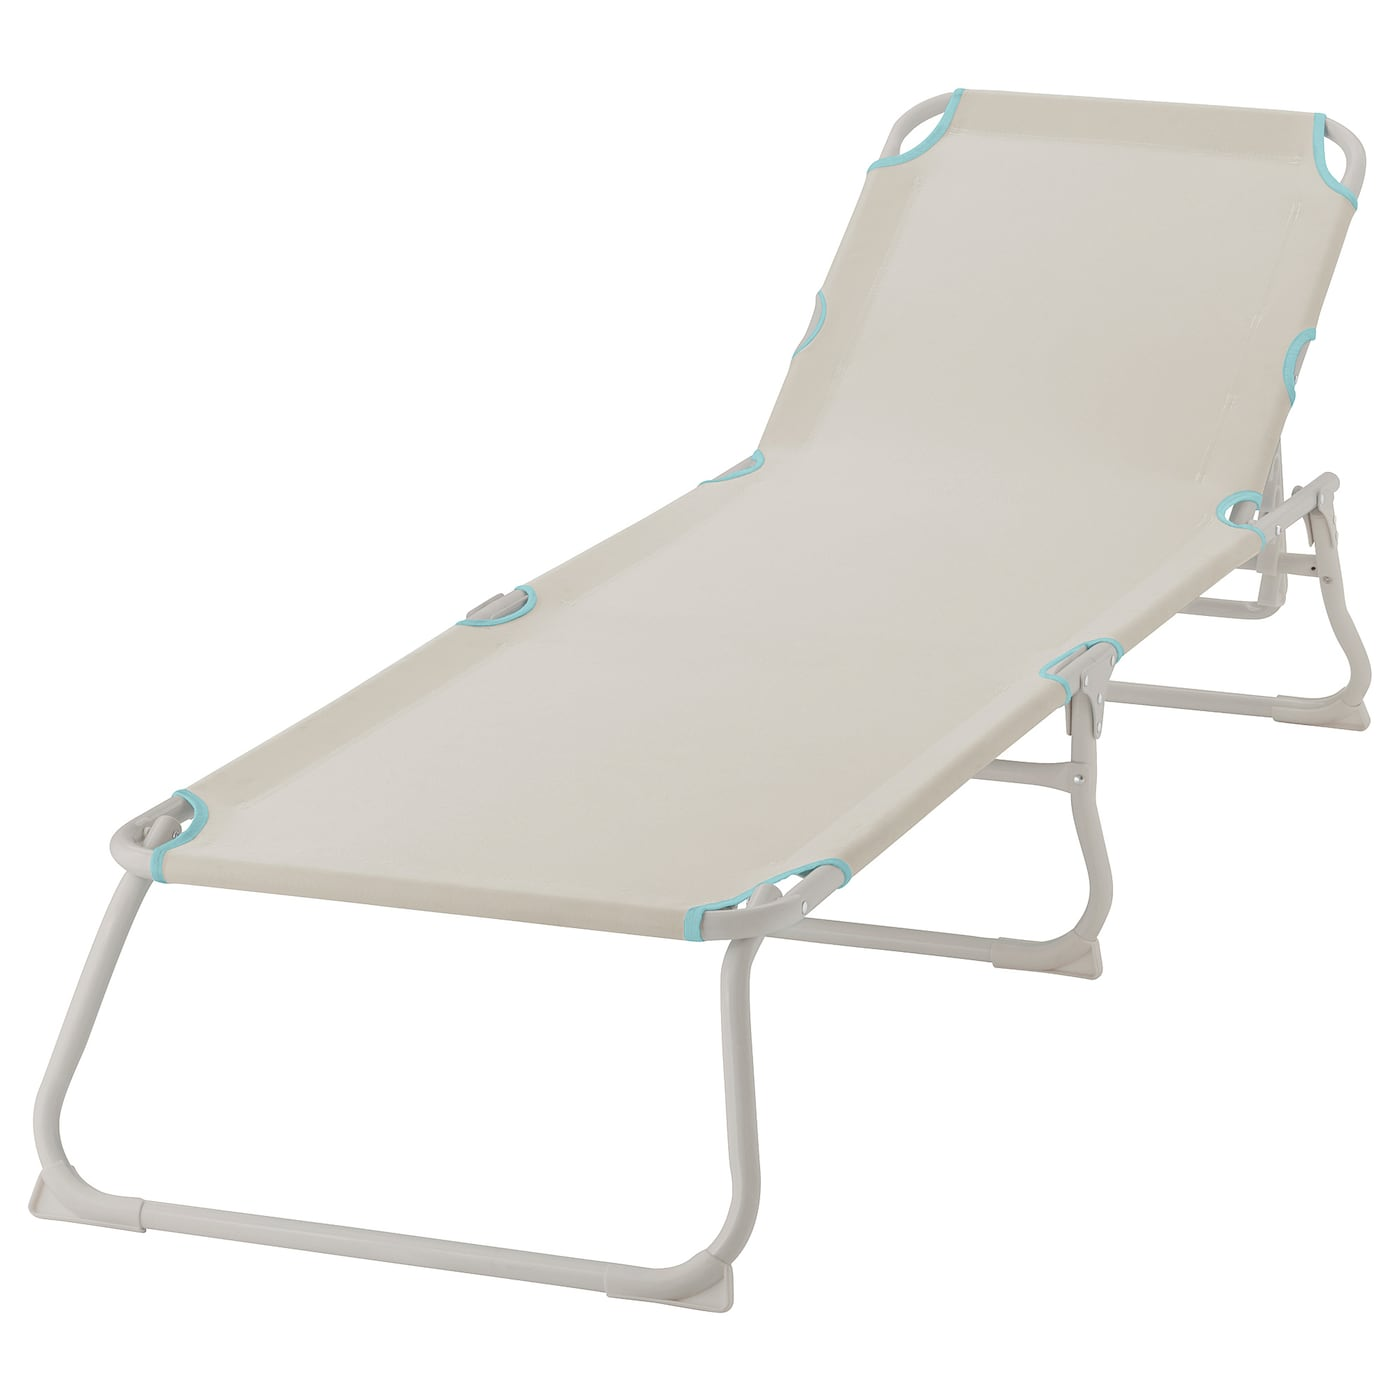 IKEA HÅMÖ sun lounger Made of heavy polyester fabric, which is very hard-wearing and durable.